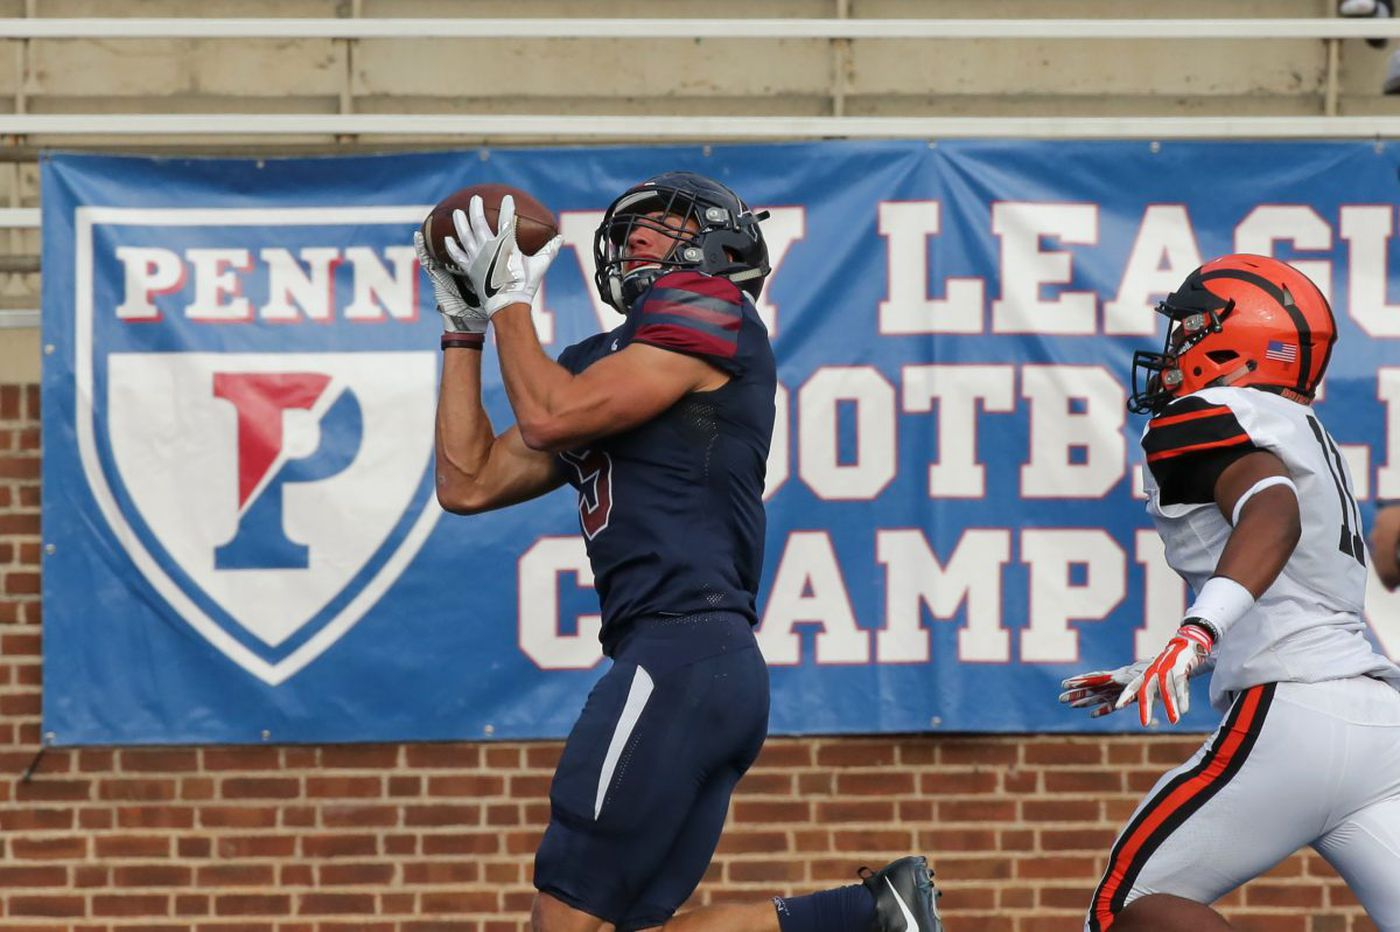 Penn upsets Princeton, 38-35, in Ivy League football thriller at Franklin Field